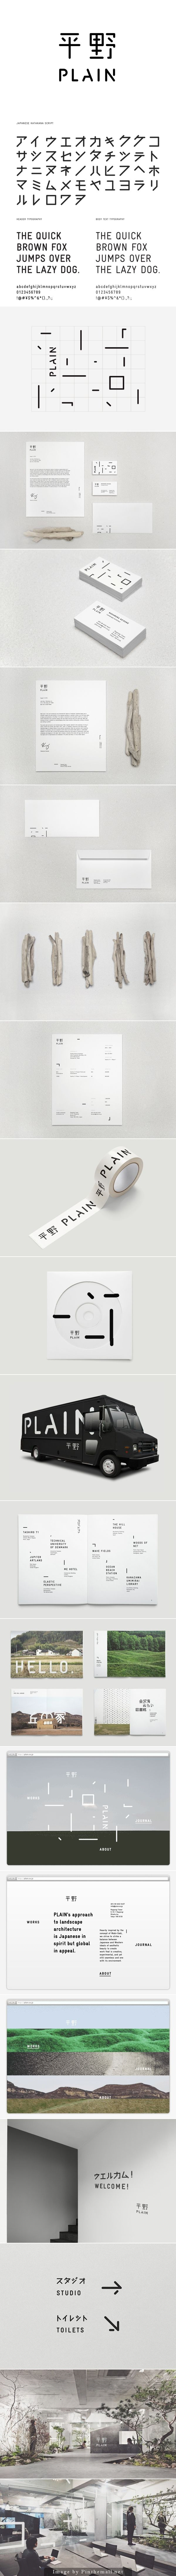 PLAIN by Sidney Lim YX, via Behance